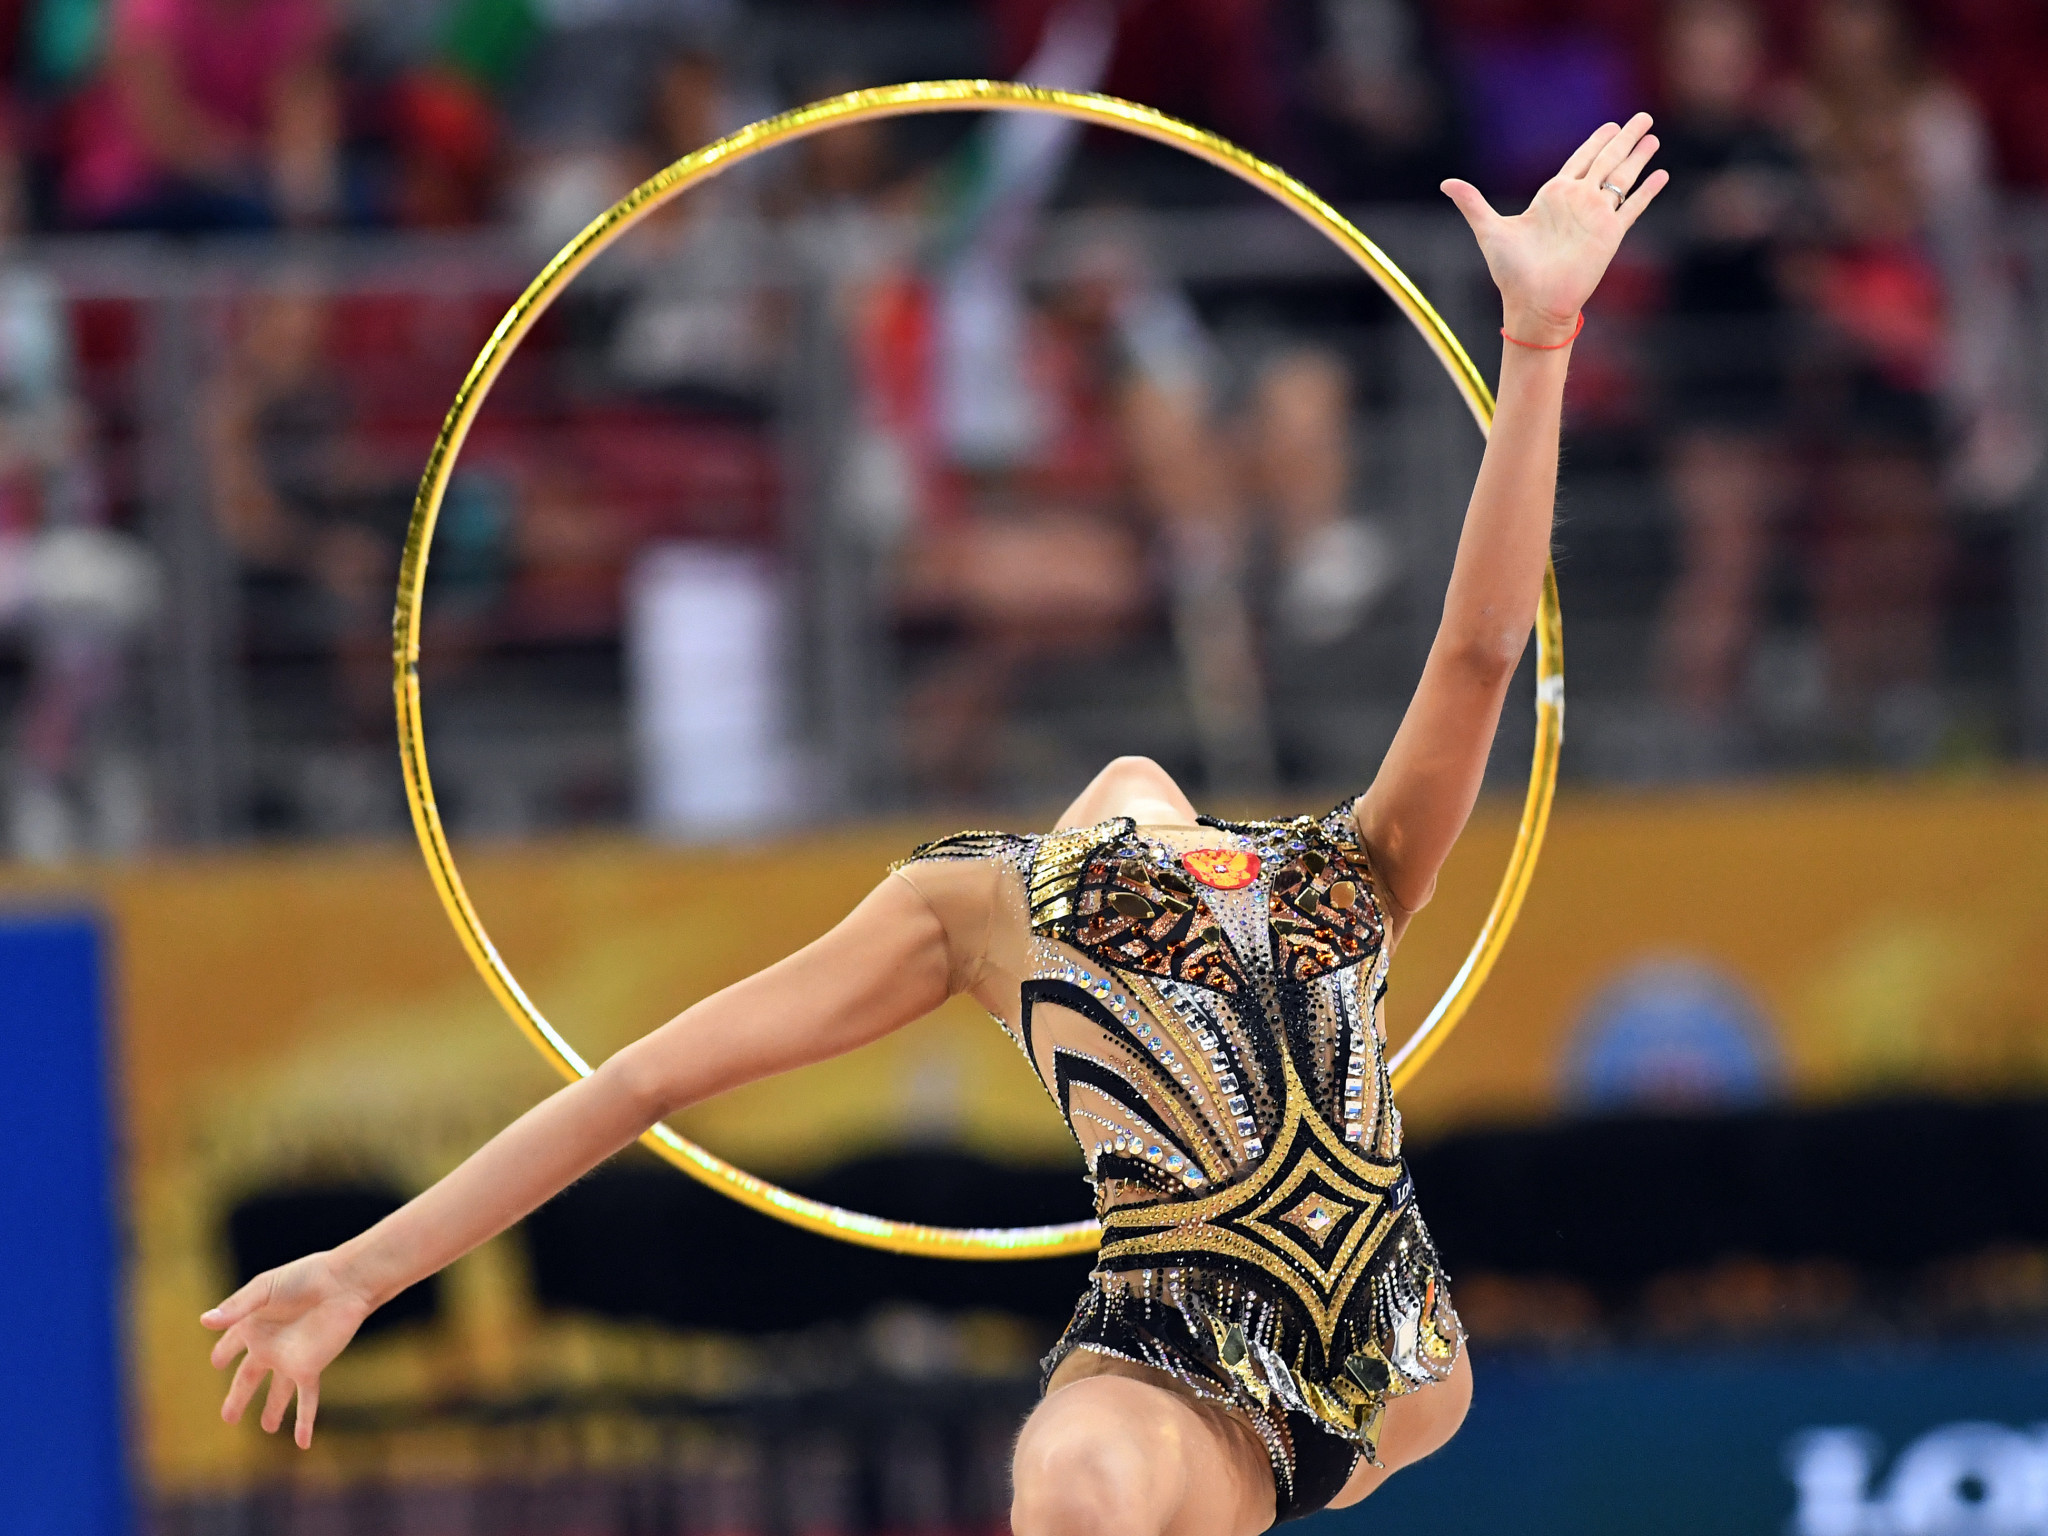 World champion Averina impresses in qualification at Rhythmic Gymnastics World Cup in Baku